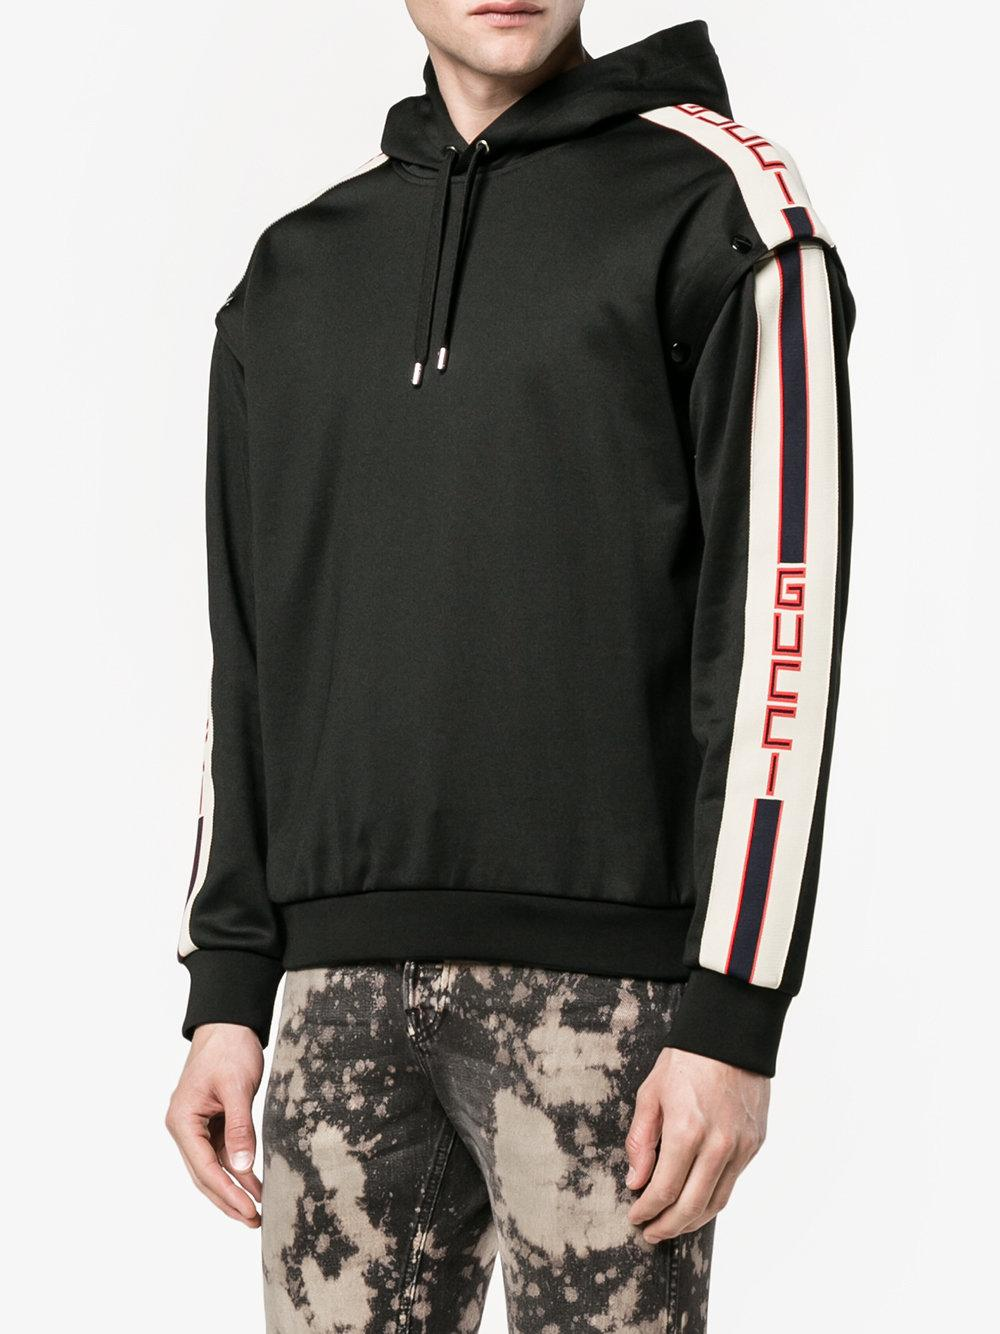 Gucci hoodies for men